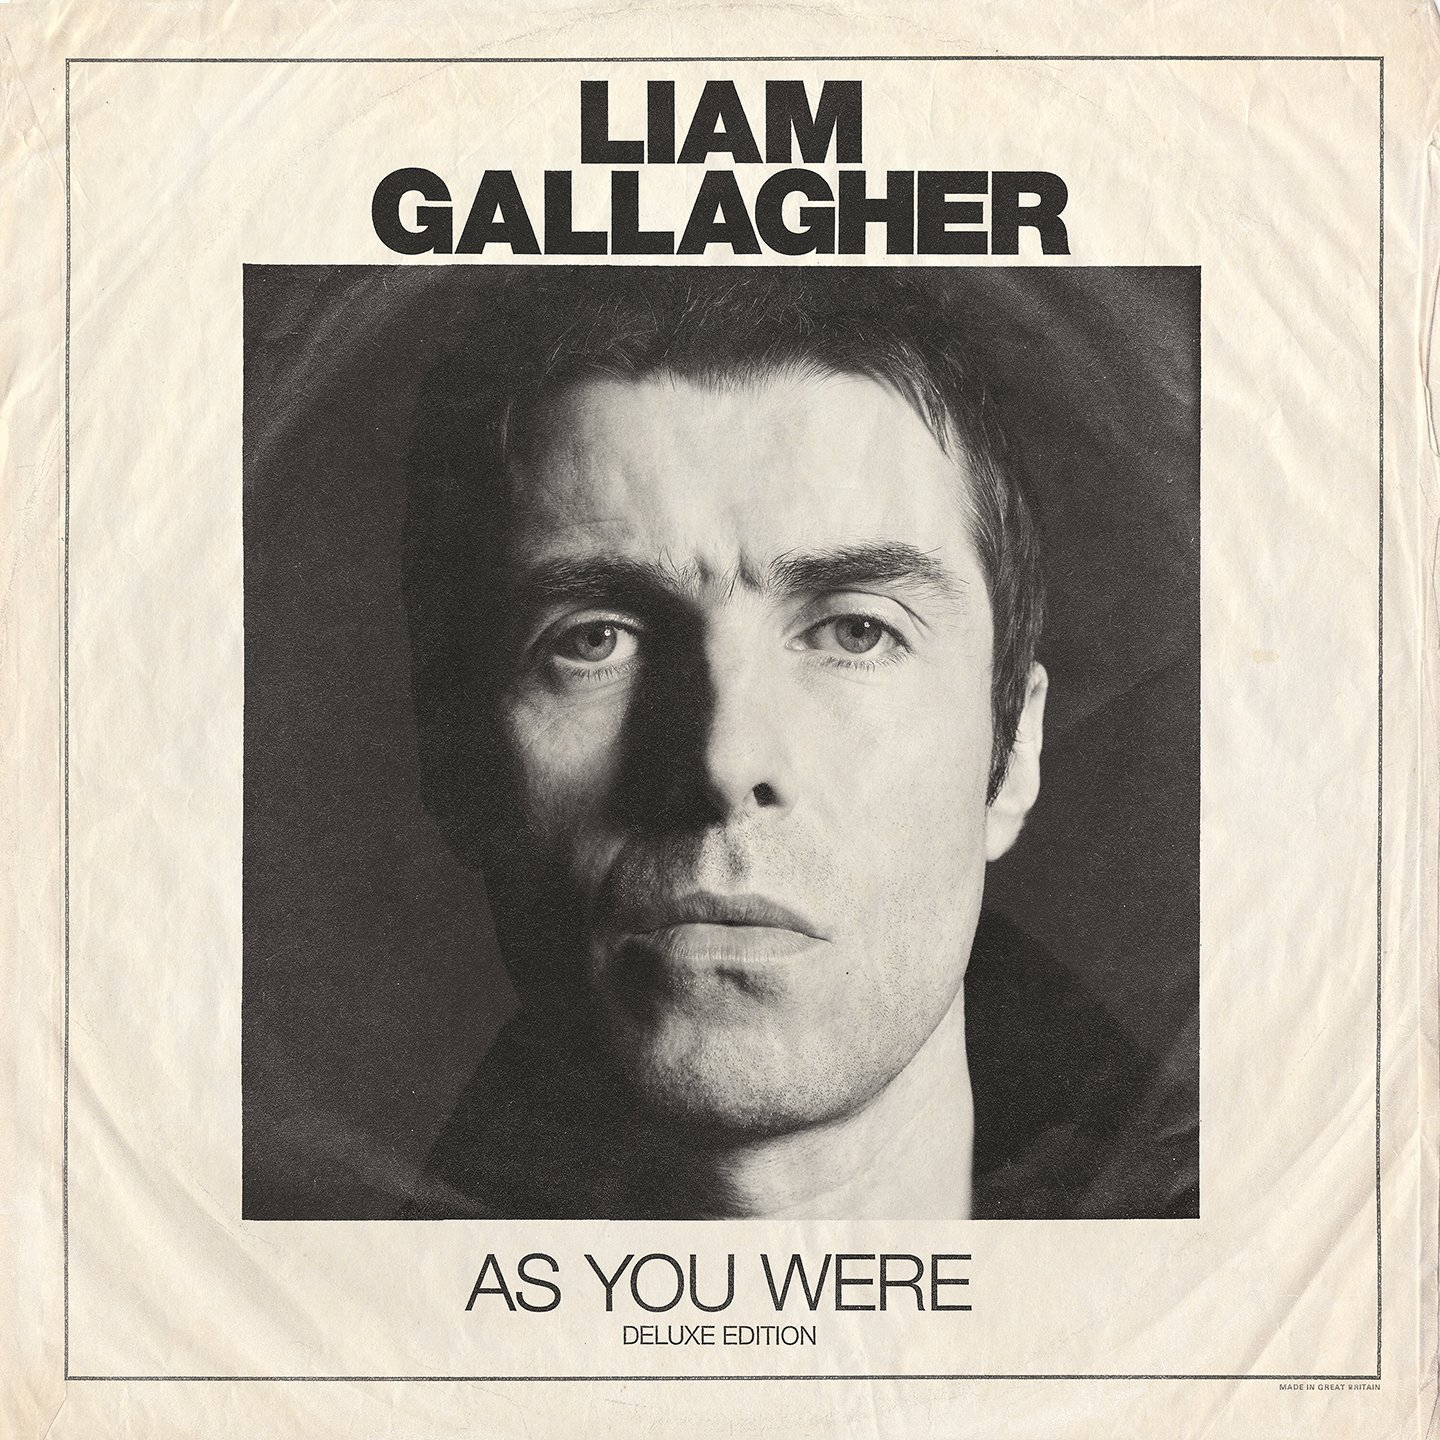 81ms2iijv5l  sl1440  Liam Gallagher details first ever solo album, As You Were, announces North American tour